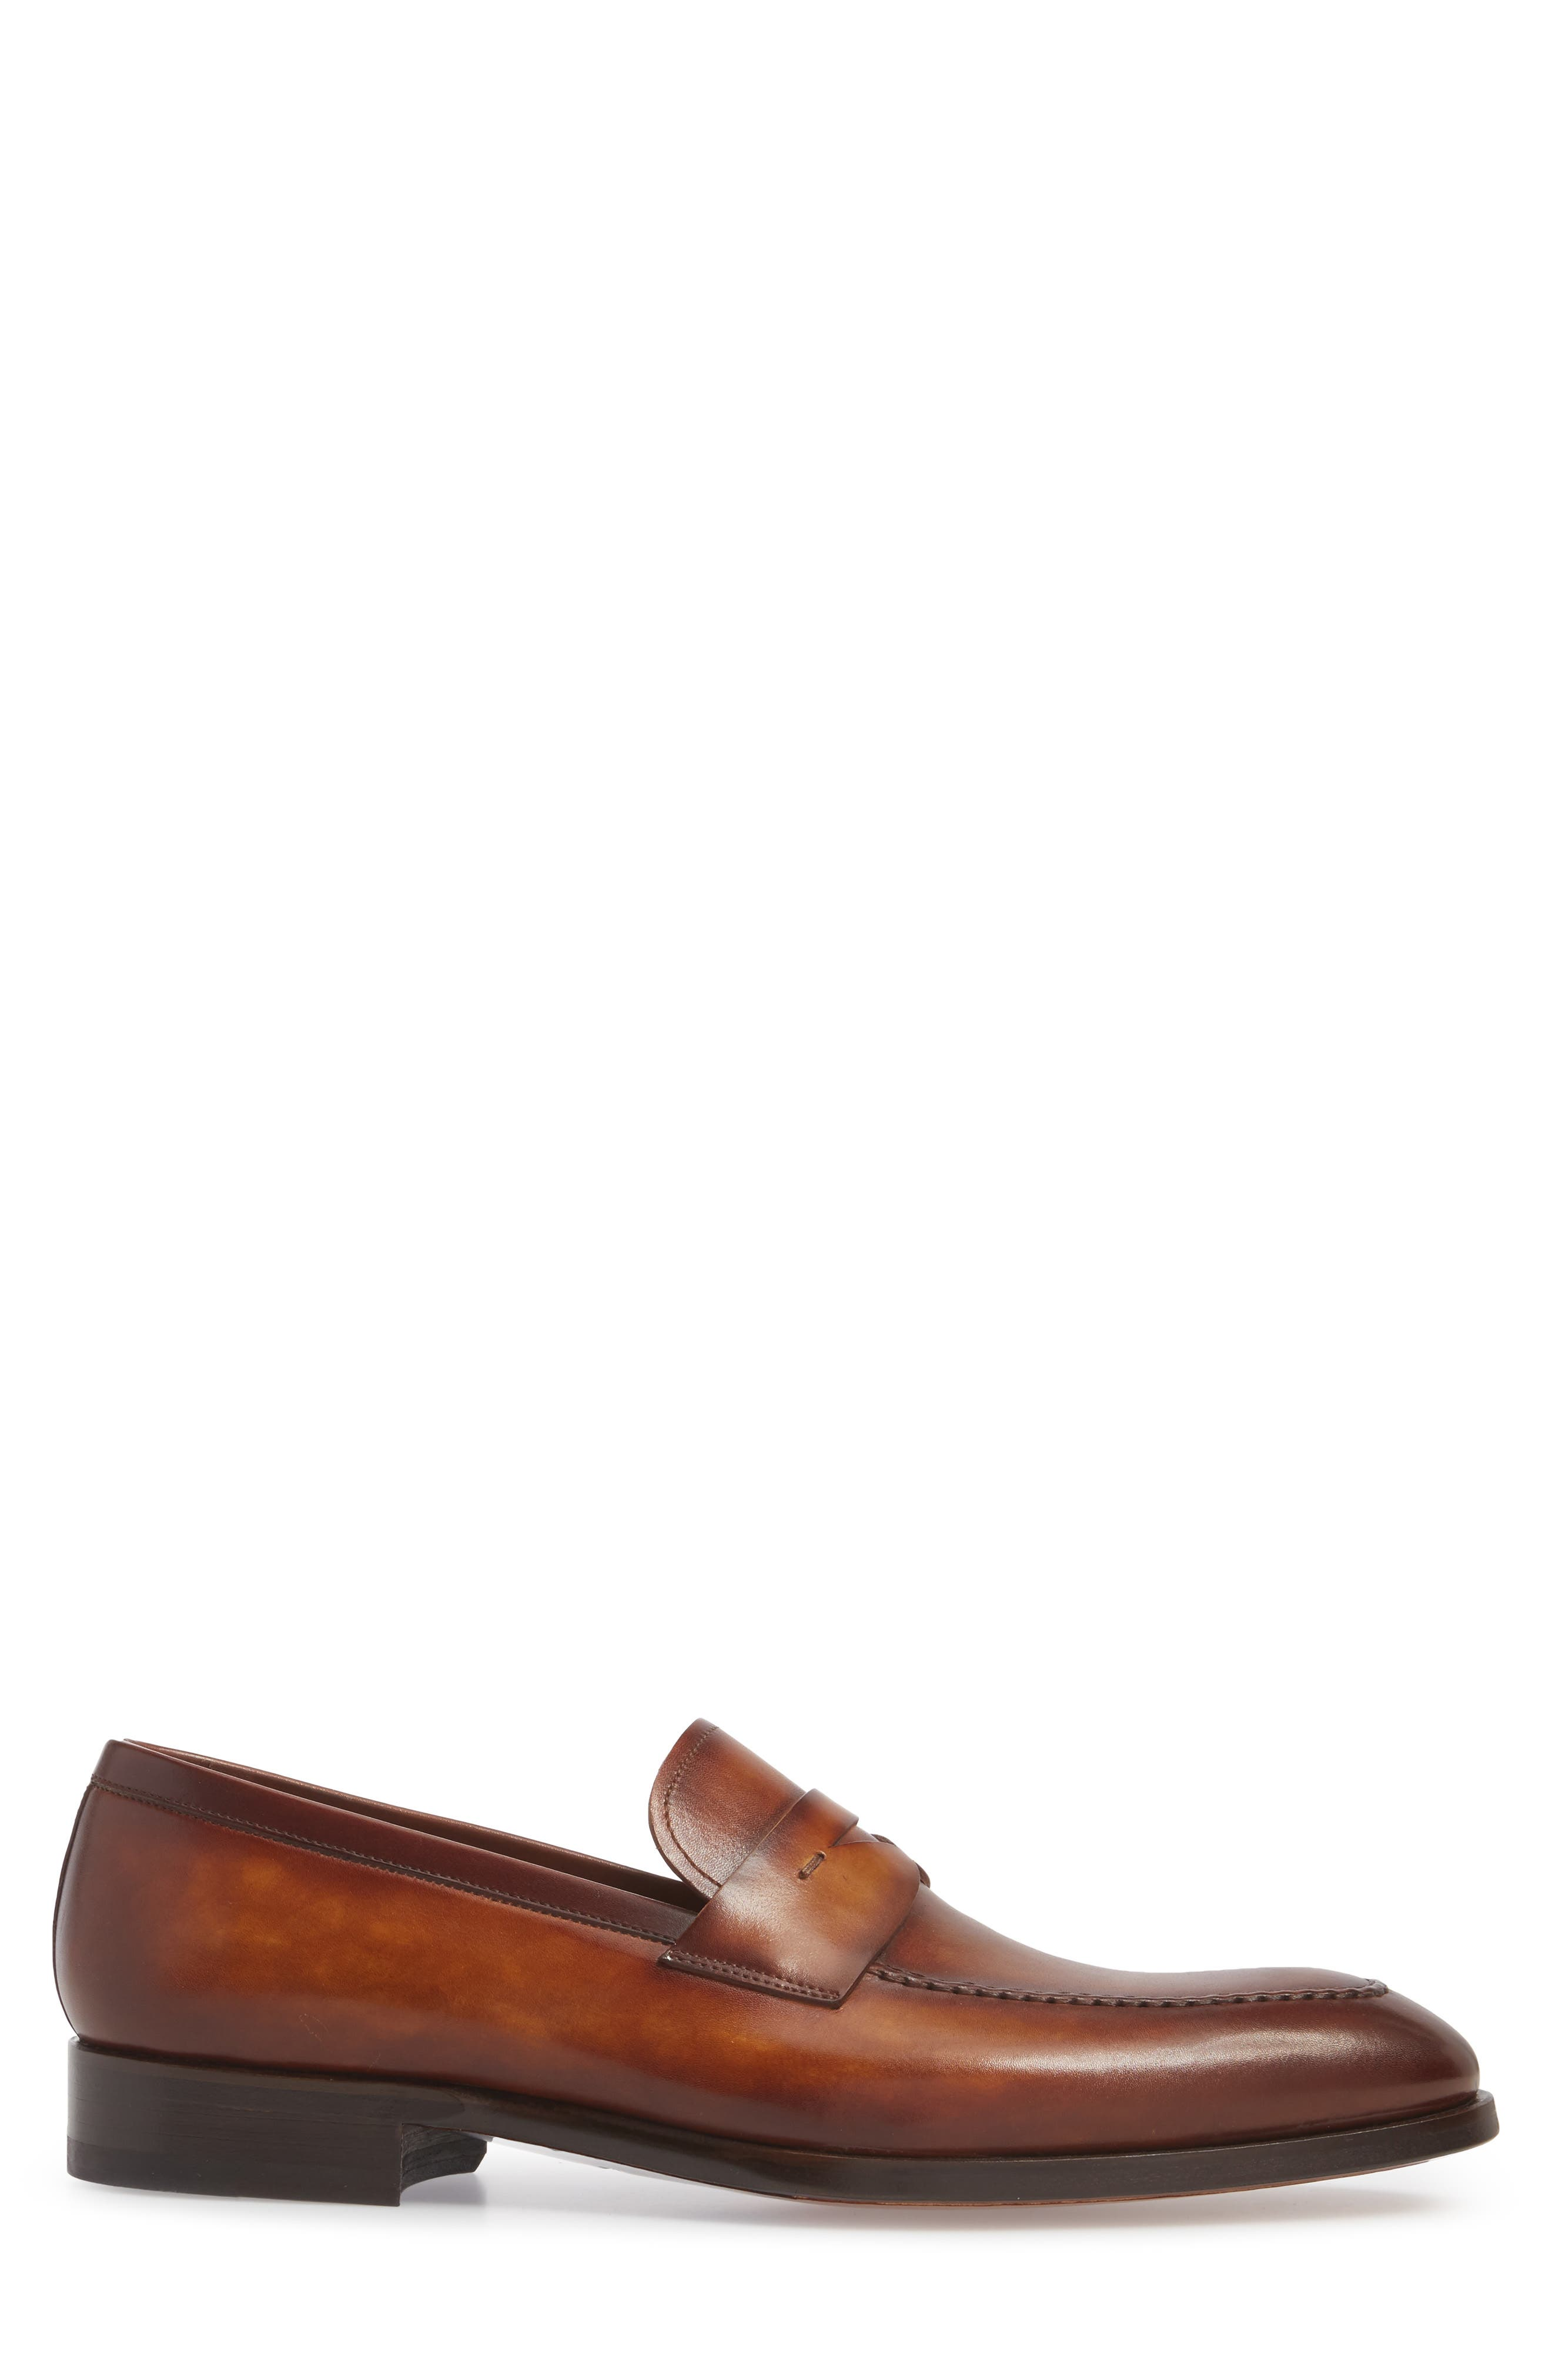 Rolly Apron Toe Penny Loafer,                             Alternate thumbnail 3, color,                             Brown Leather